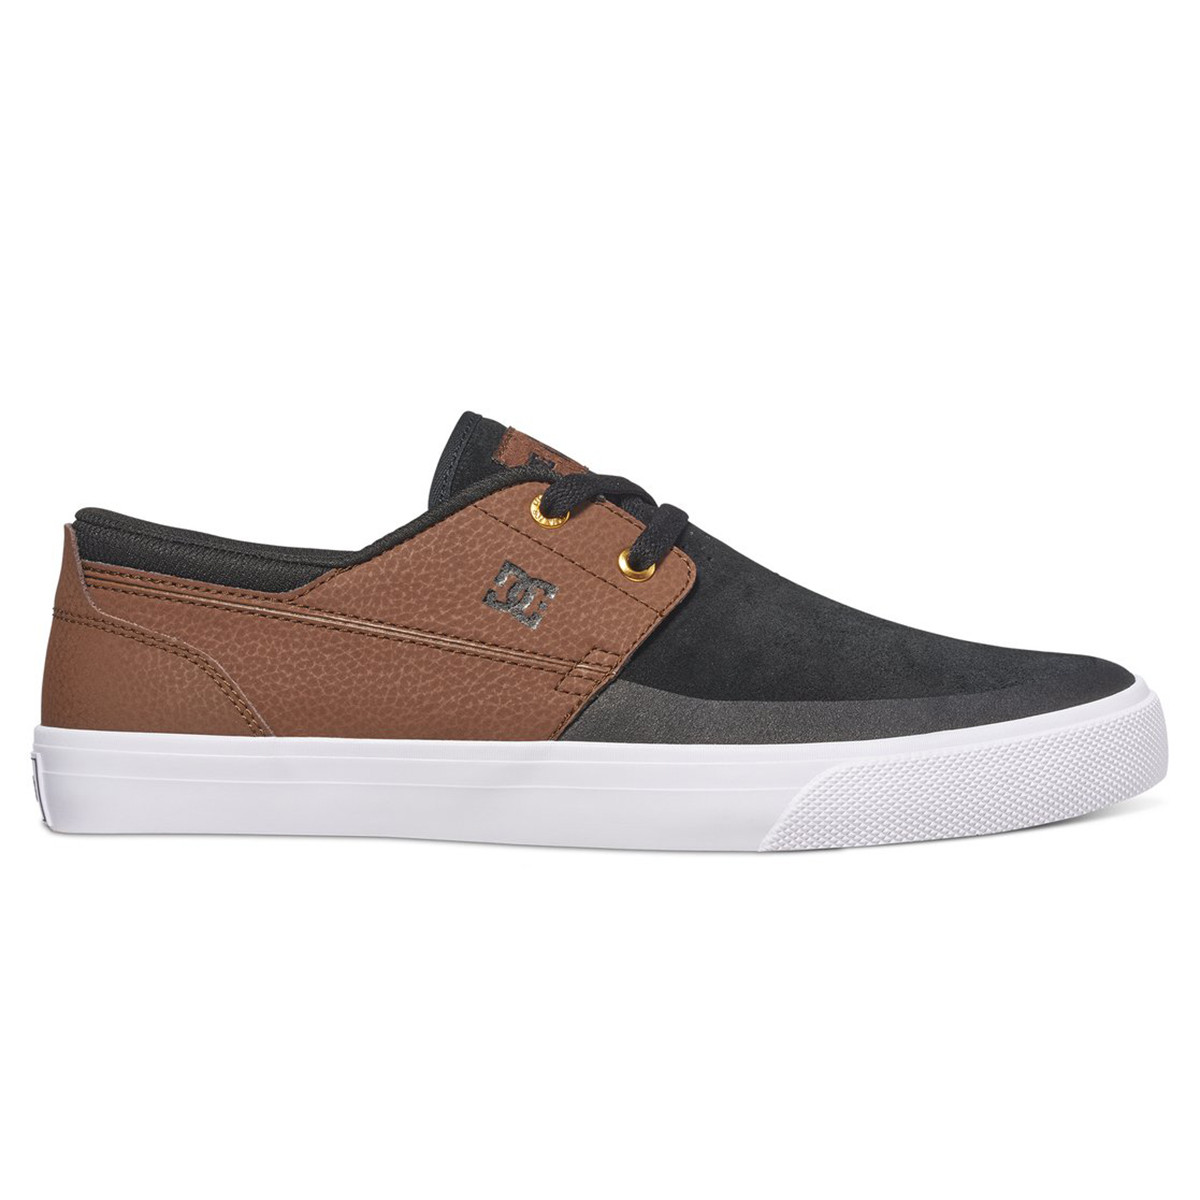 DC Shoes Wes Kremer Chaussure Homme Noir Taille